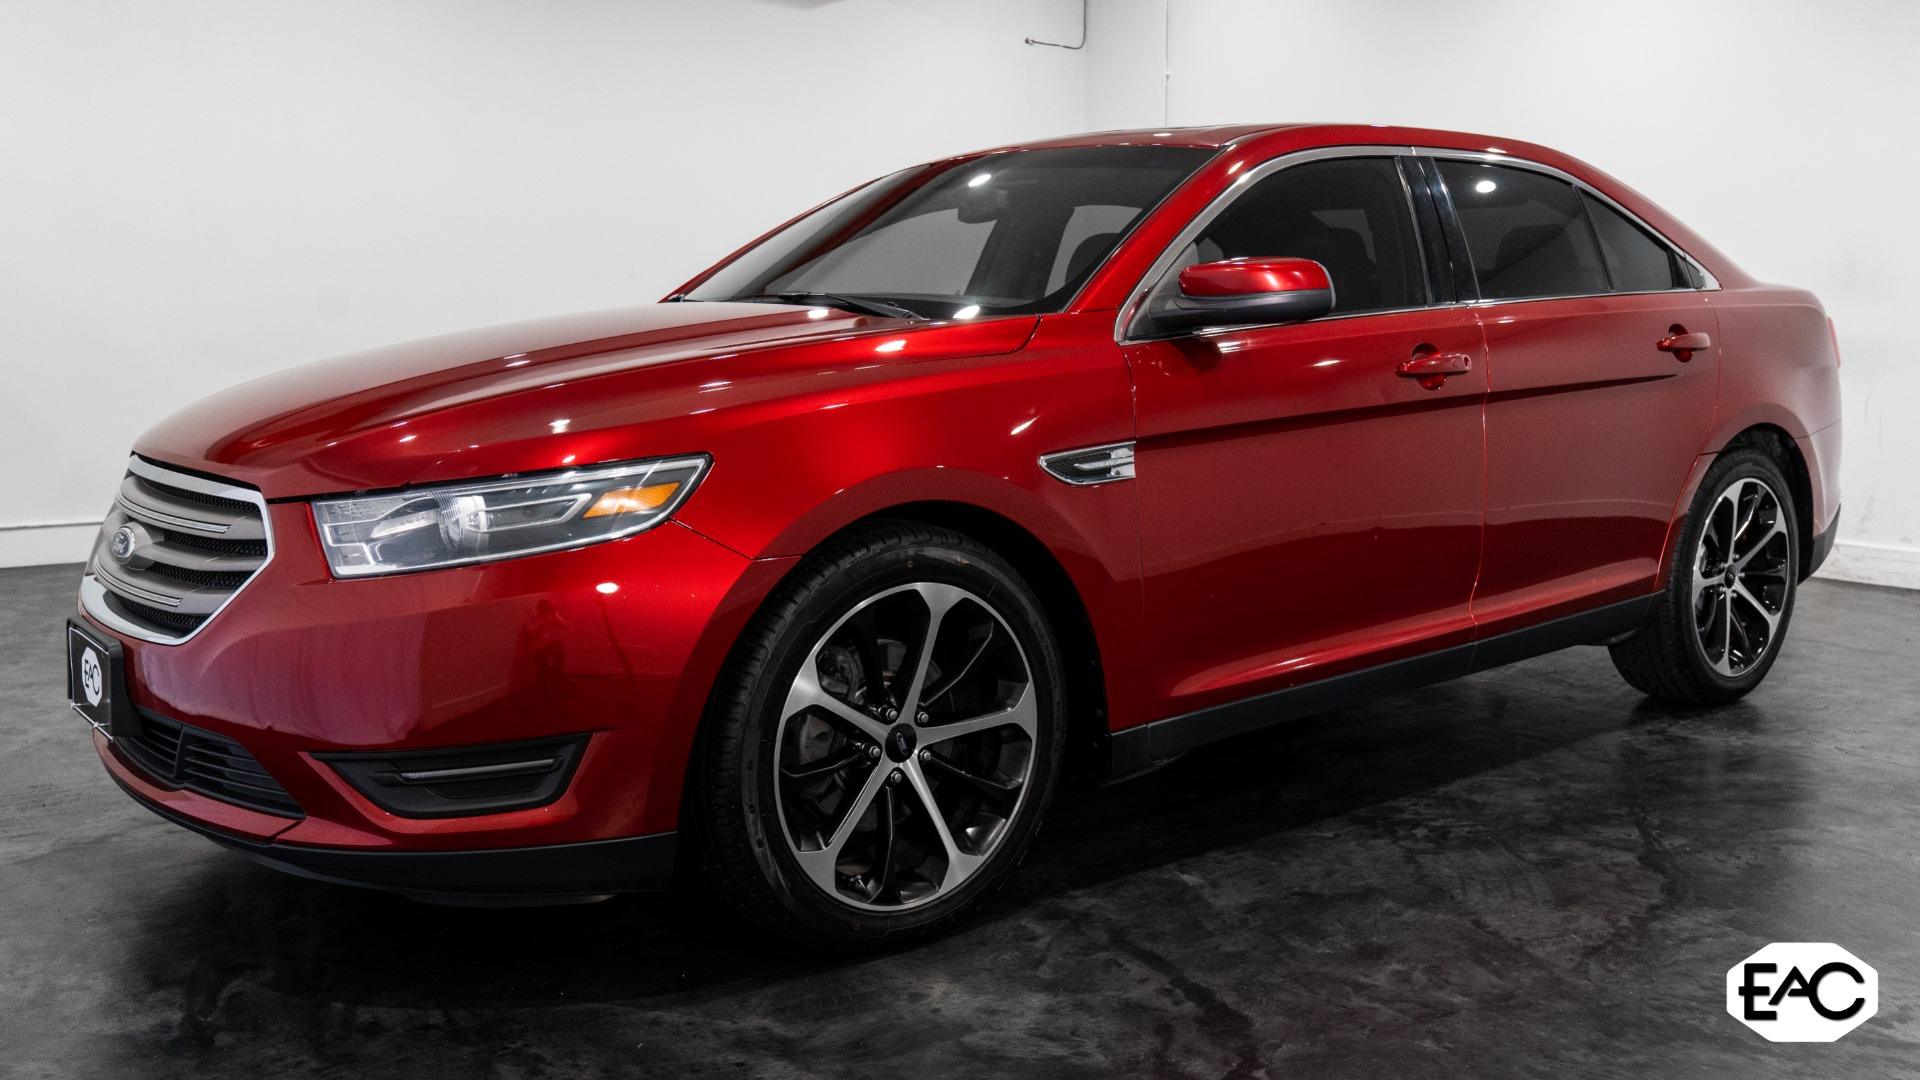 Used 2015 Ford Taurus SEL AWD for sale Sold at Empire Auto Collection in Warren MI 48091 1